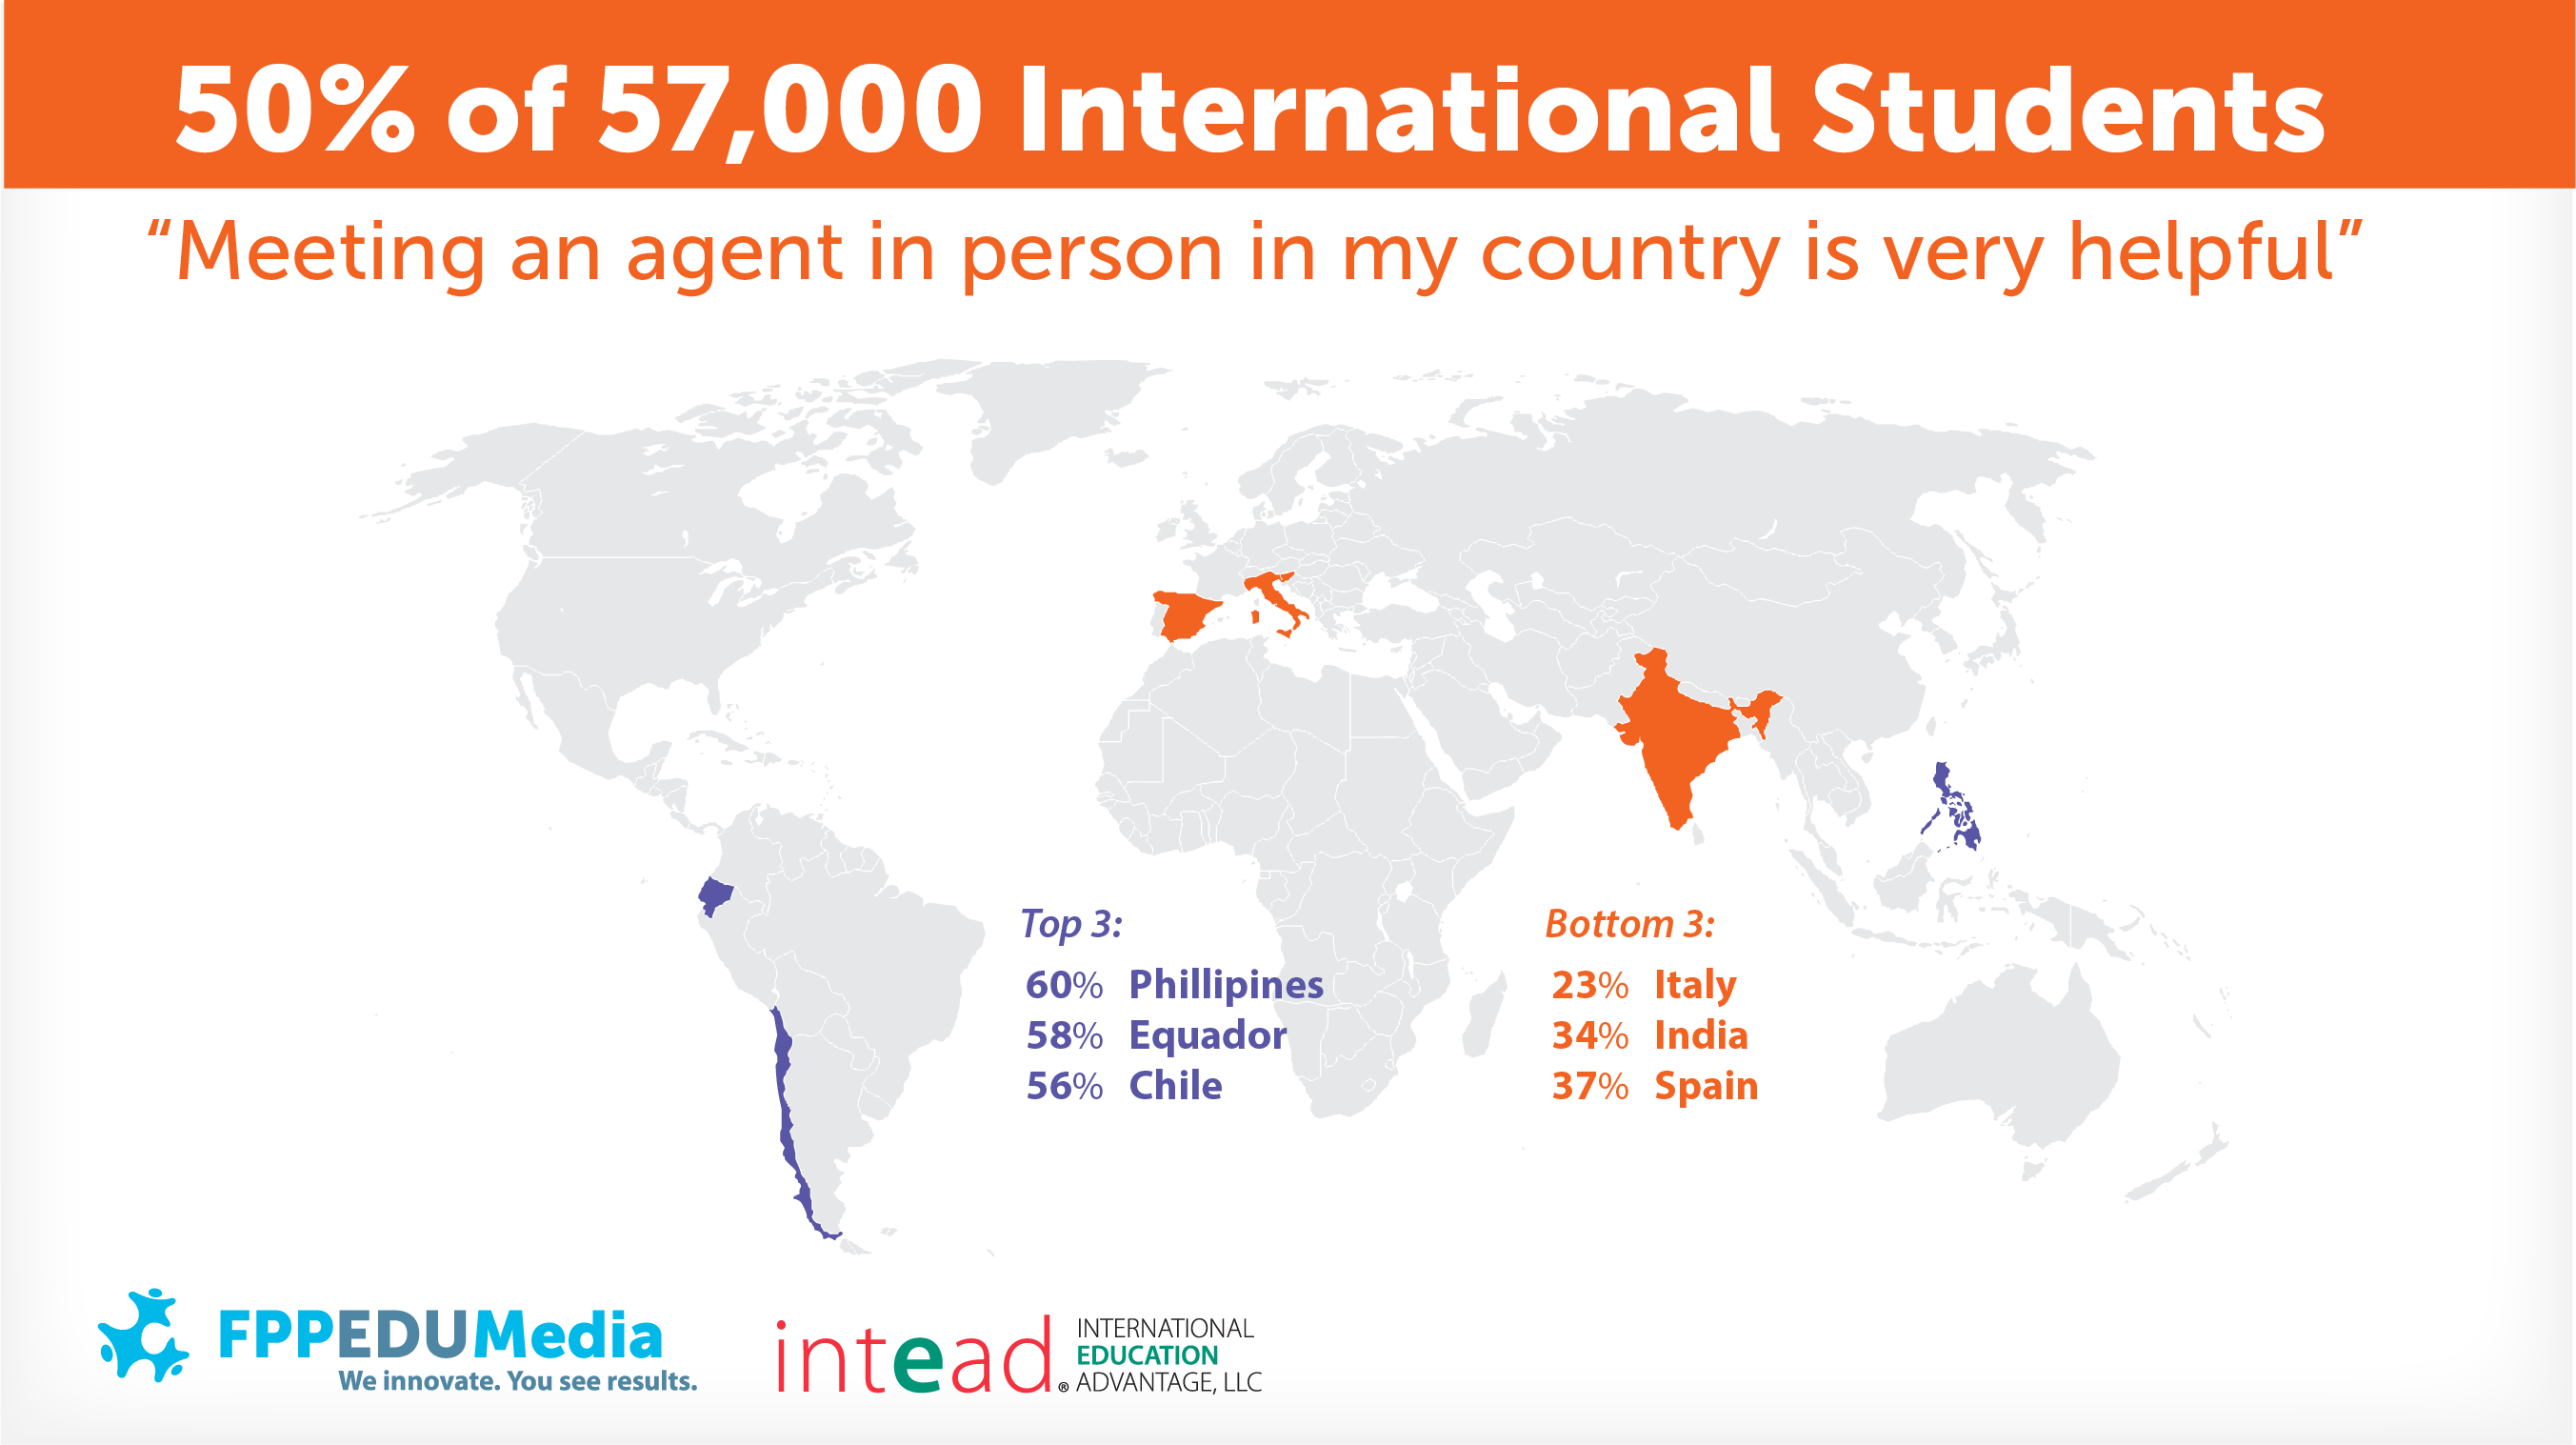 50% of 57,000 international students find meeting with agents very helpful